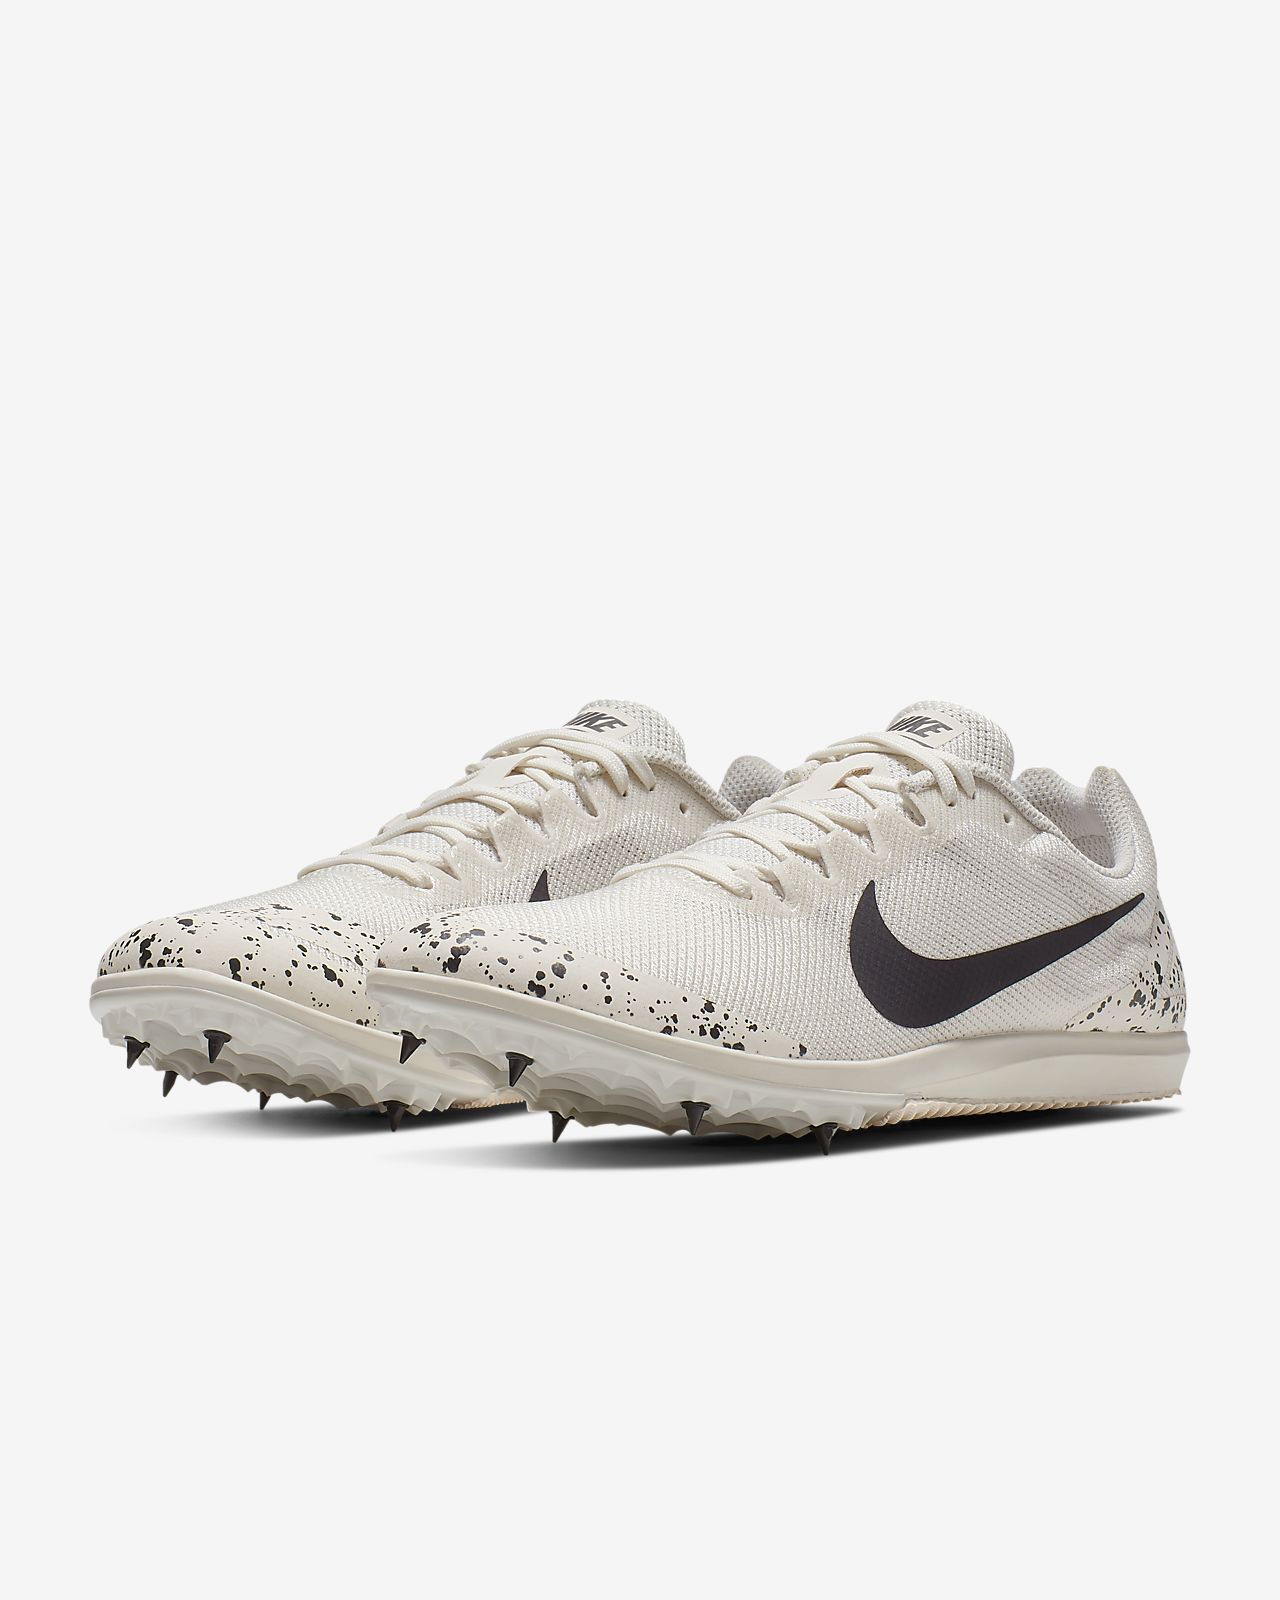 sports shoes 15680 bdc80 ... Nike Zoom Rival D 10 Unisex Track Spike